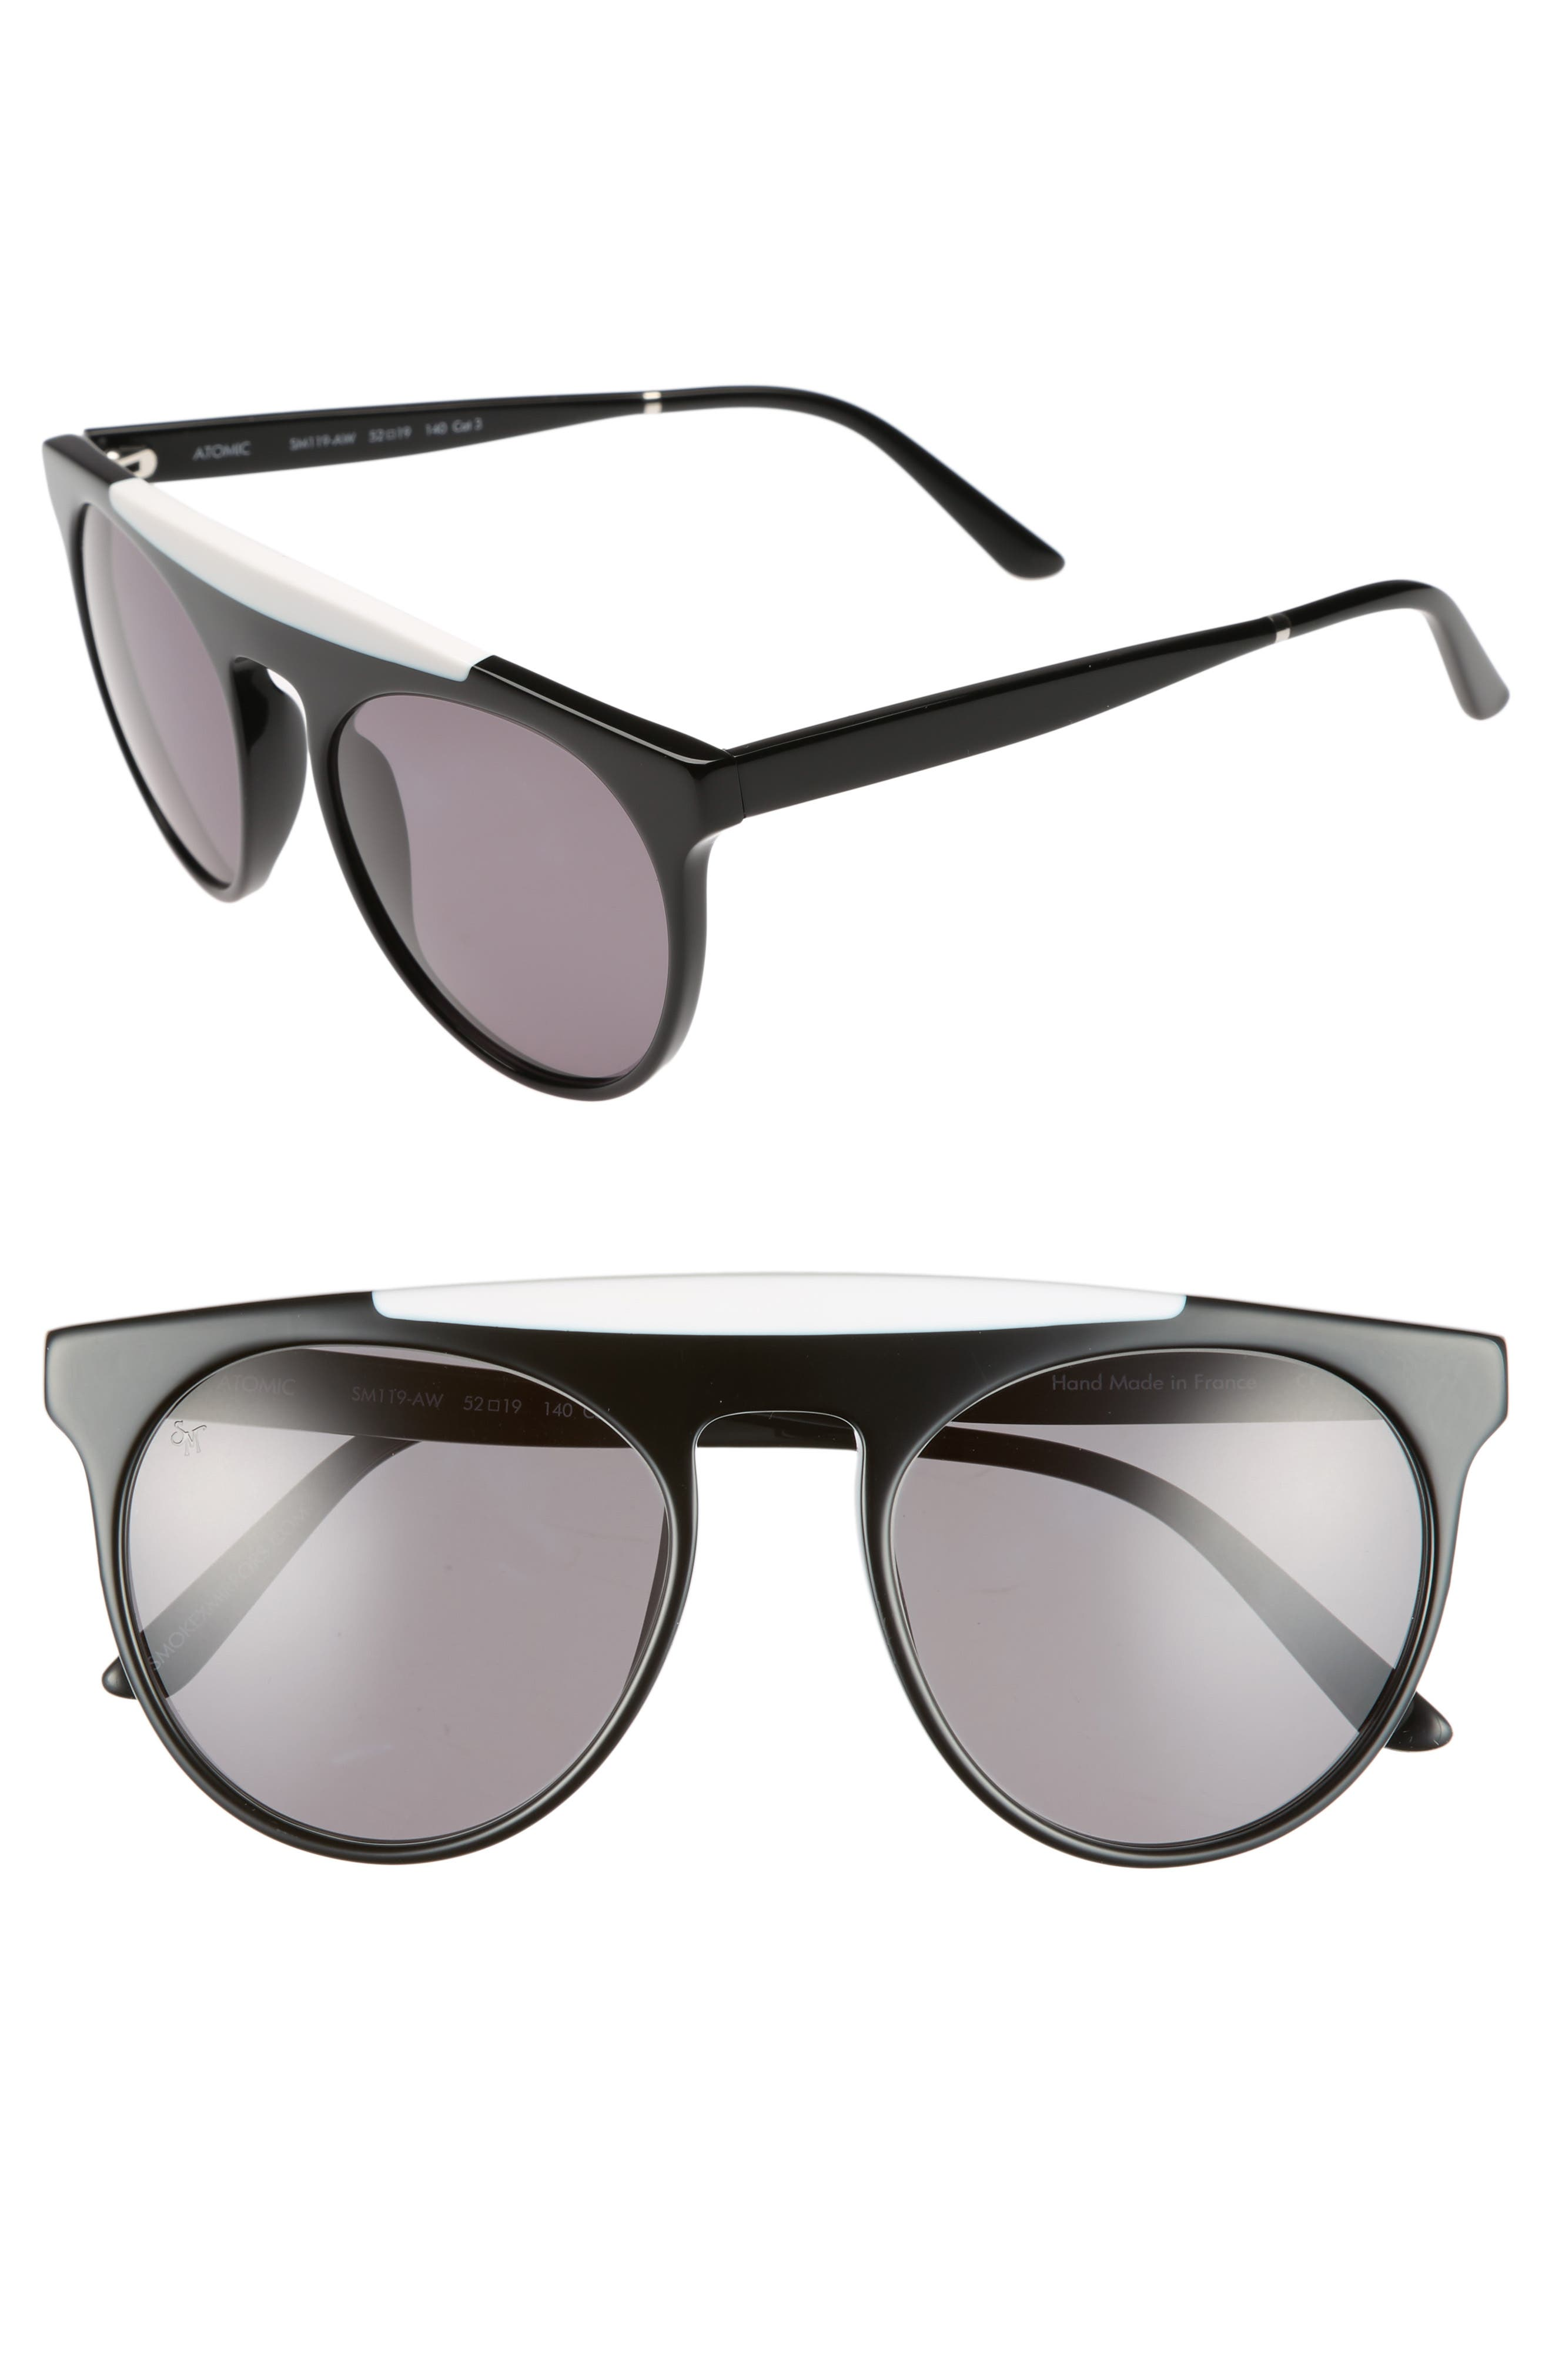 Atomic 52mm Sunglasses,                         Main,                         color, Black/ White/ Grey